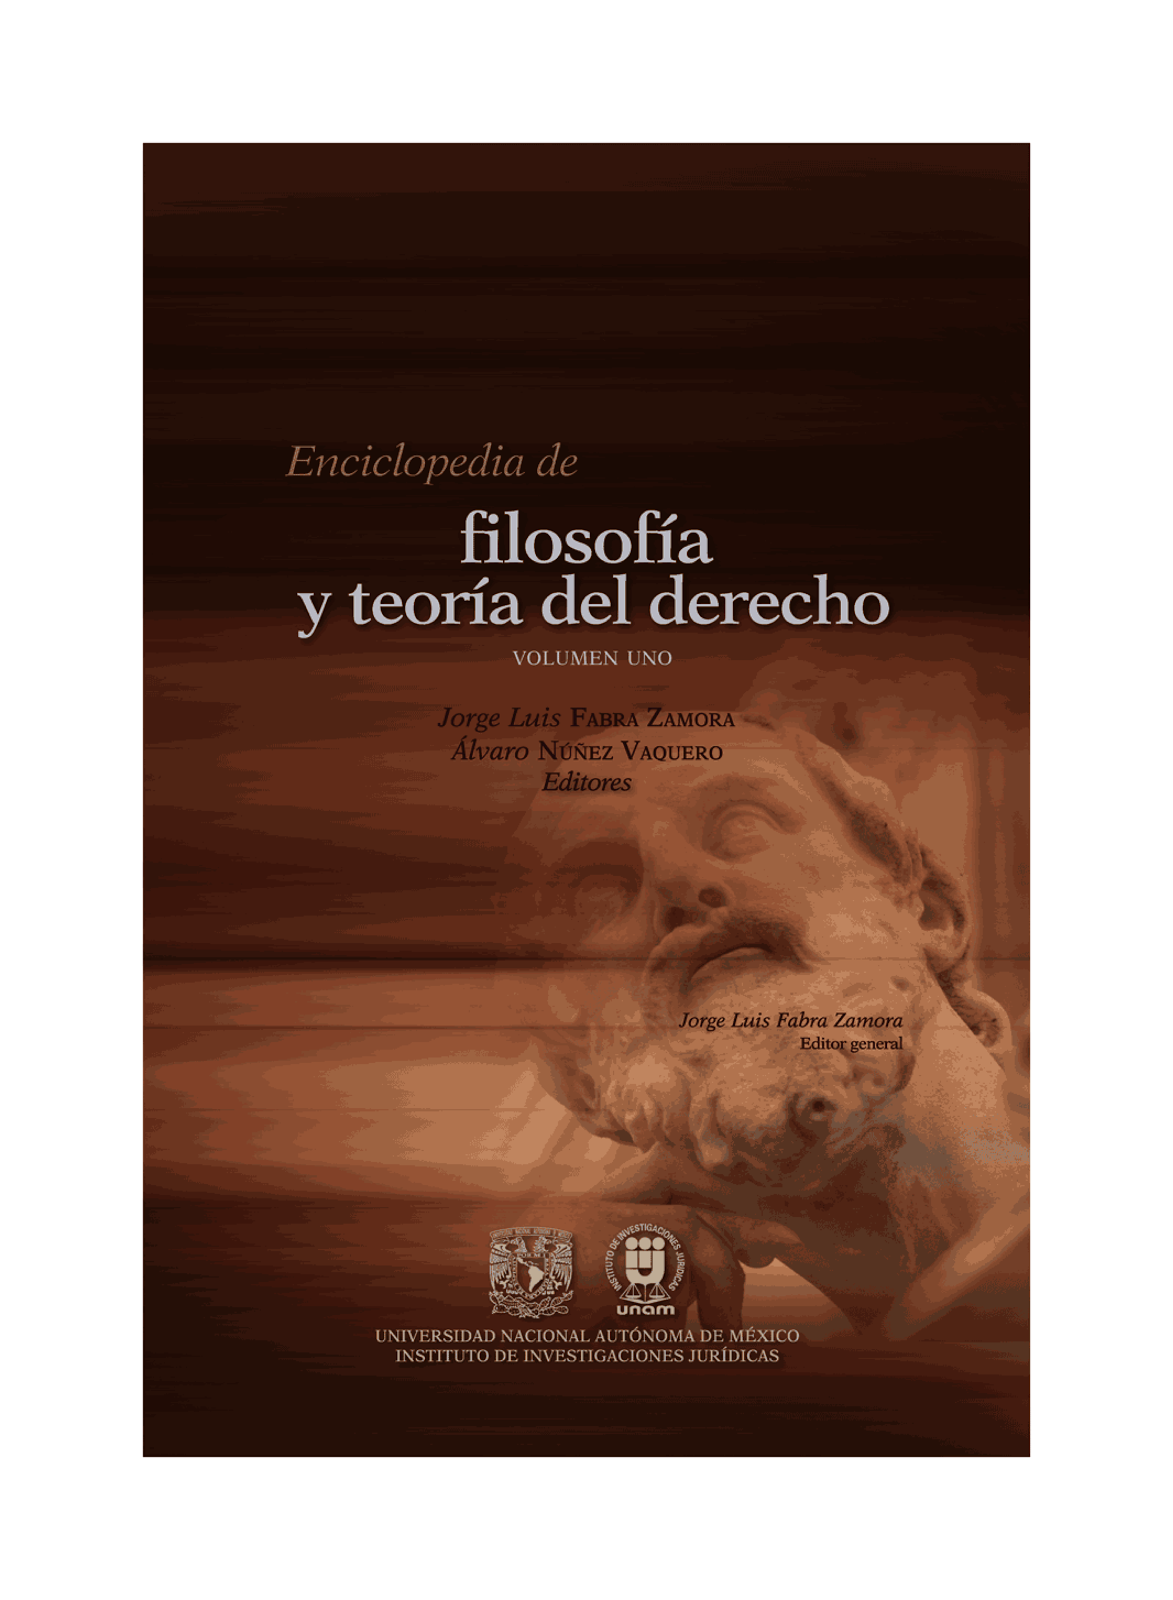 Enciclopedia de Filosofía del Derecho, 3 vols.